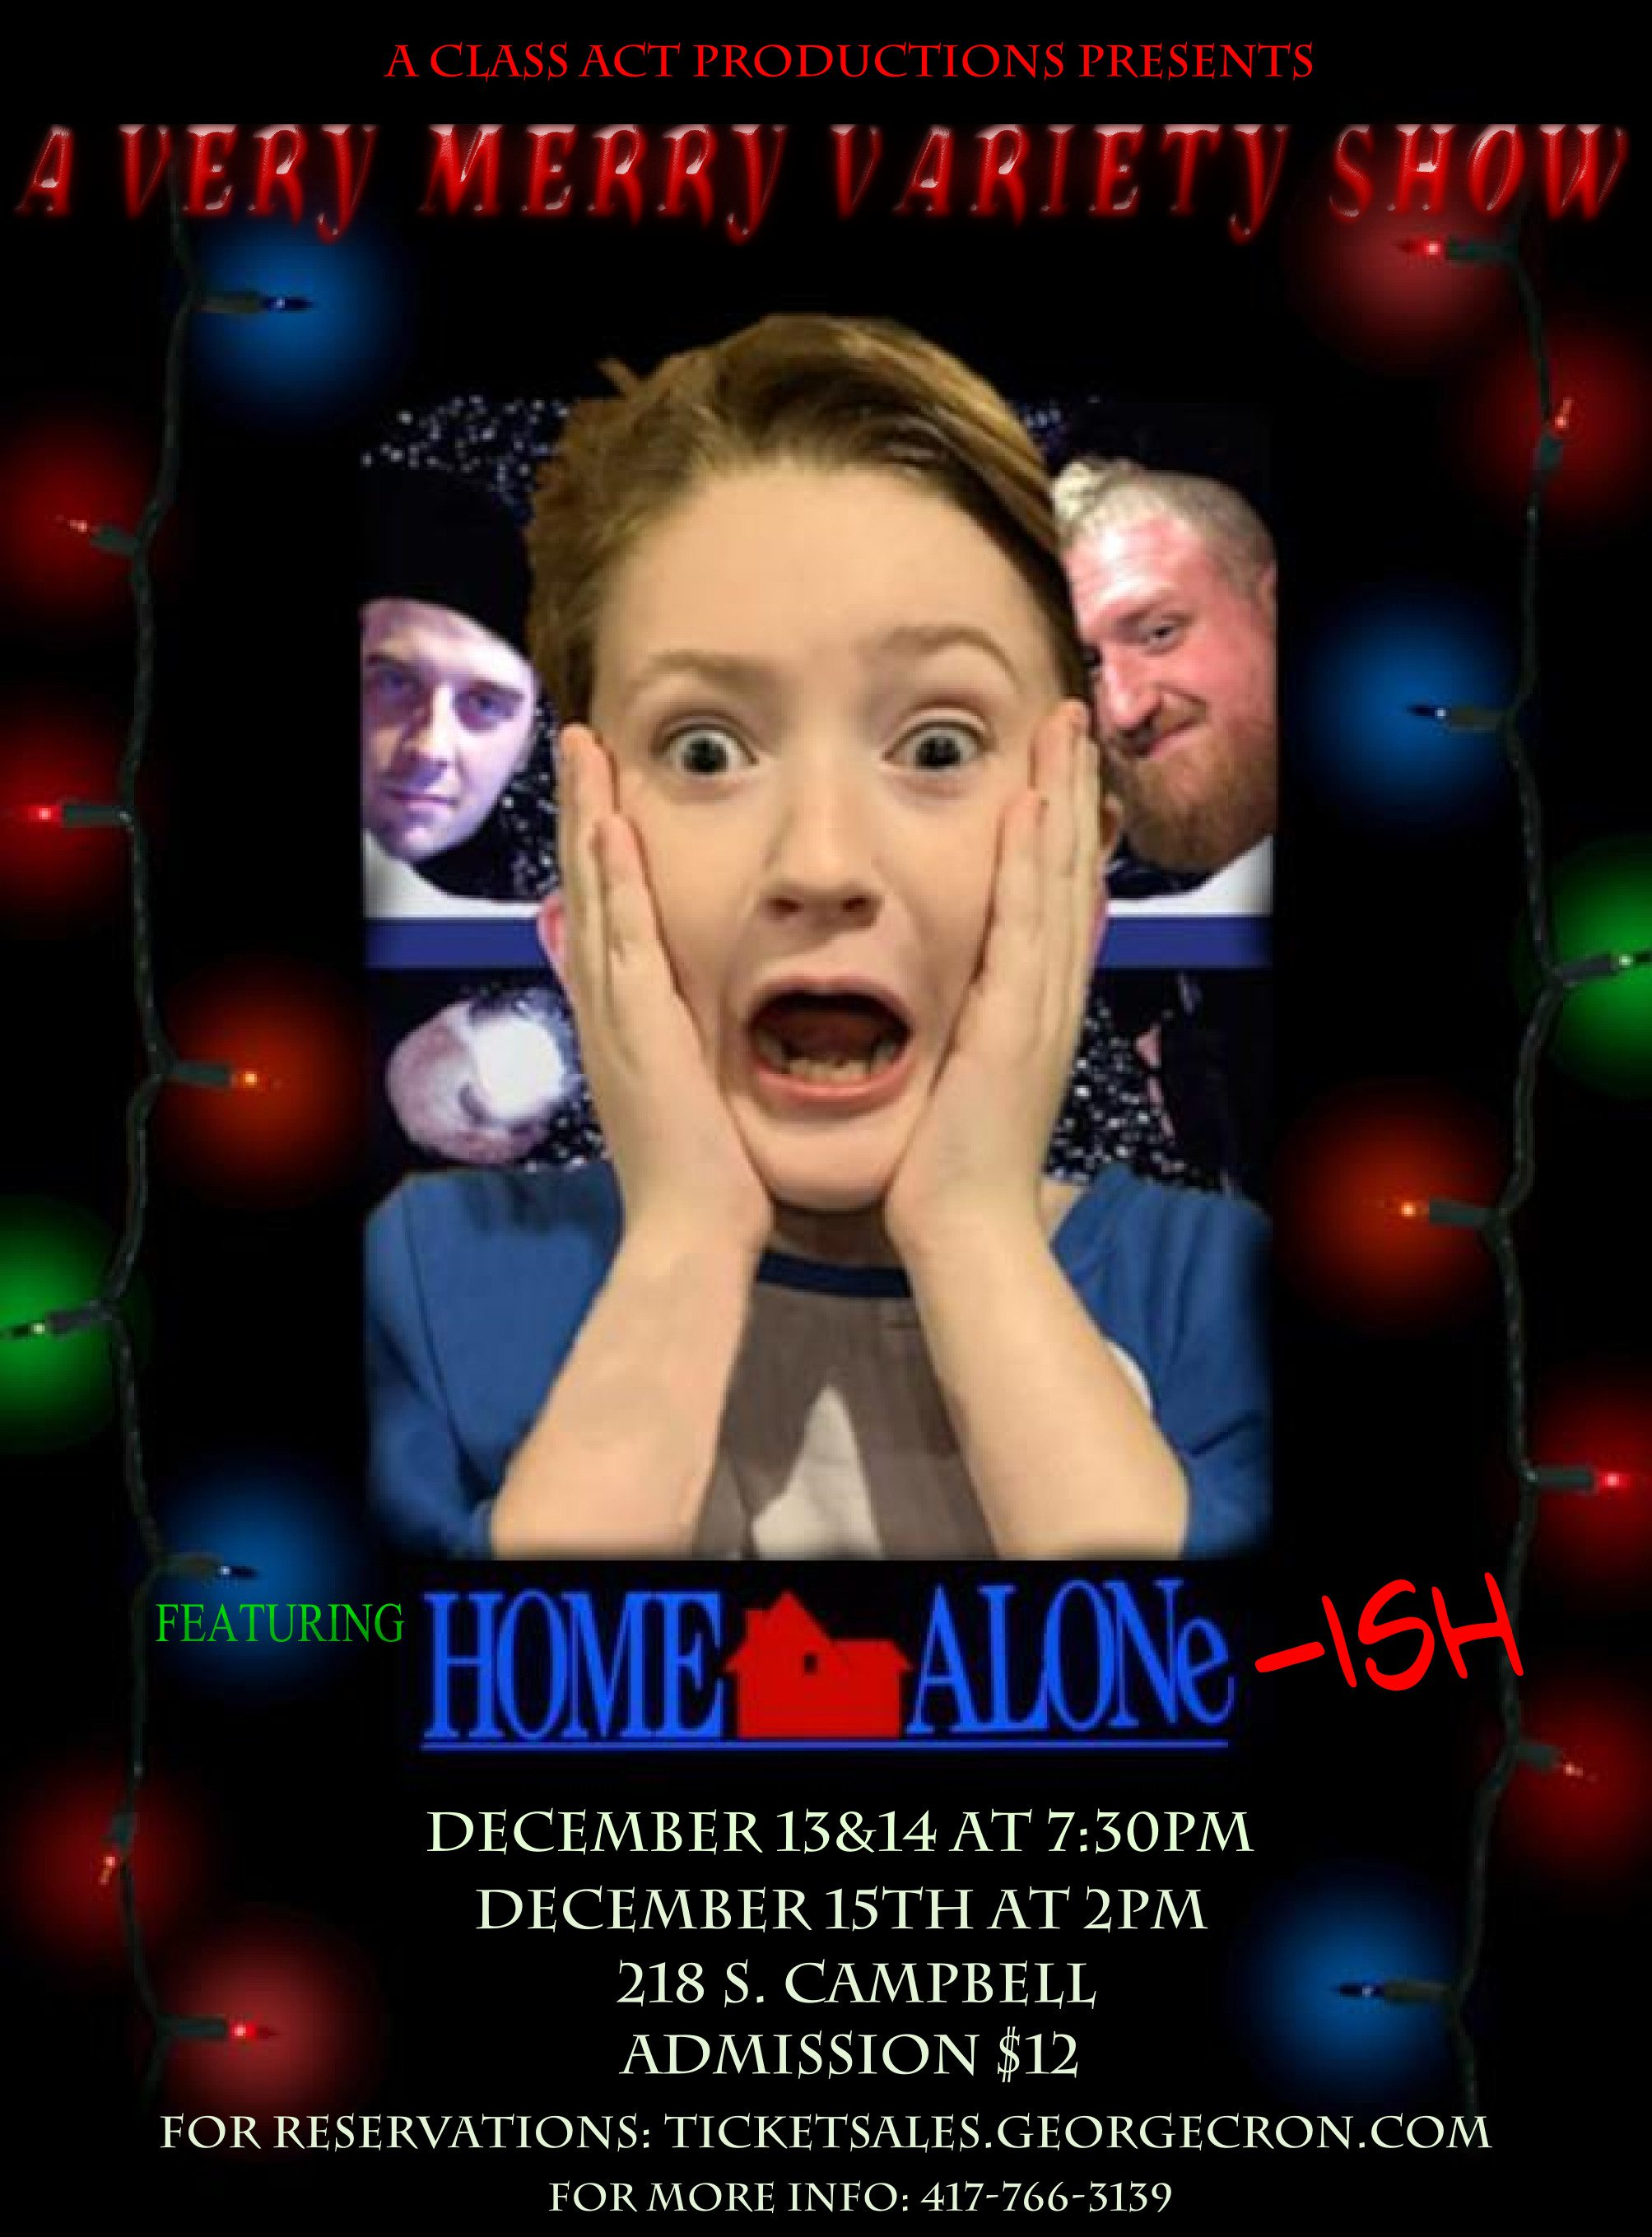 Home Alone inspired show in Springfield, MO